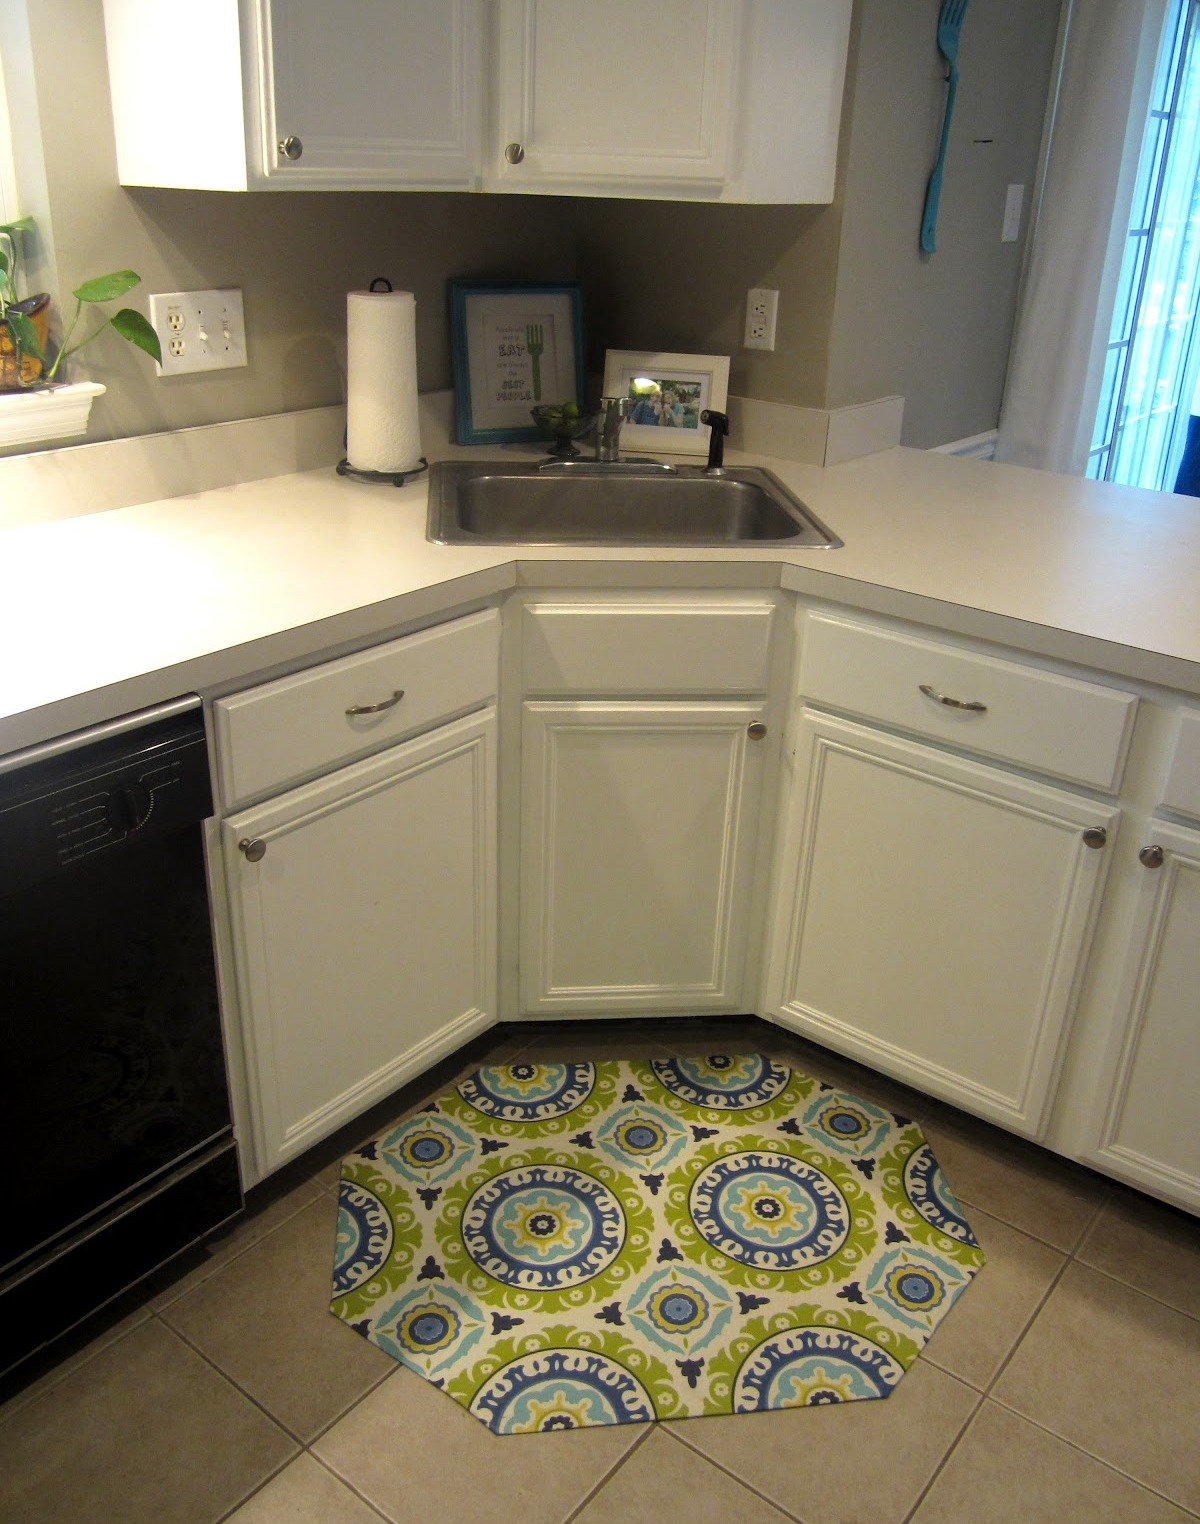 Kitchen sink floor mats photo - 1